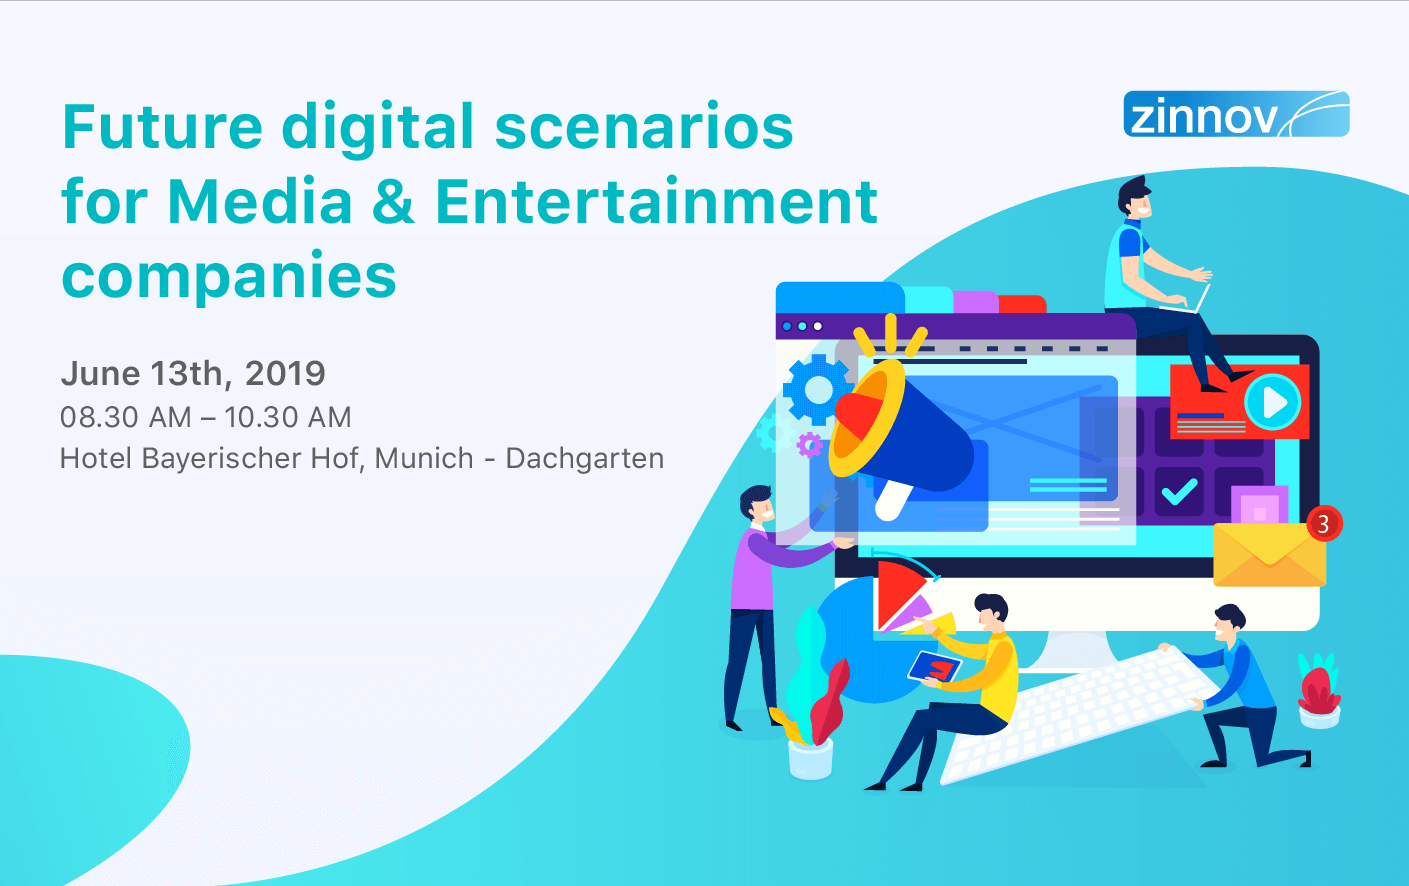 Future digital scenarios for Media & Entertainment companies